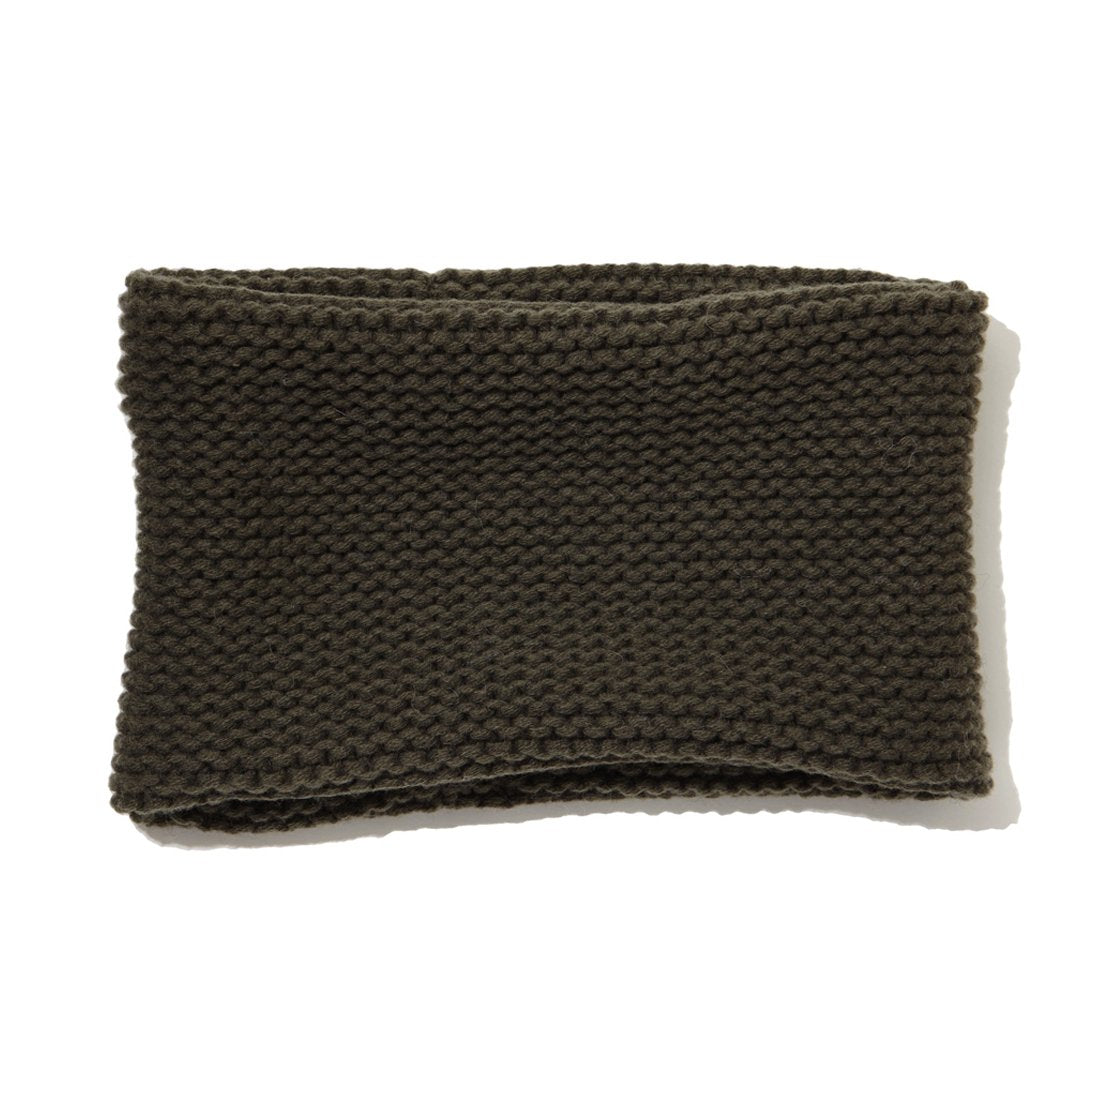 Neck Warmer / KHAKI (19A-NSA-AC-06)